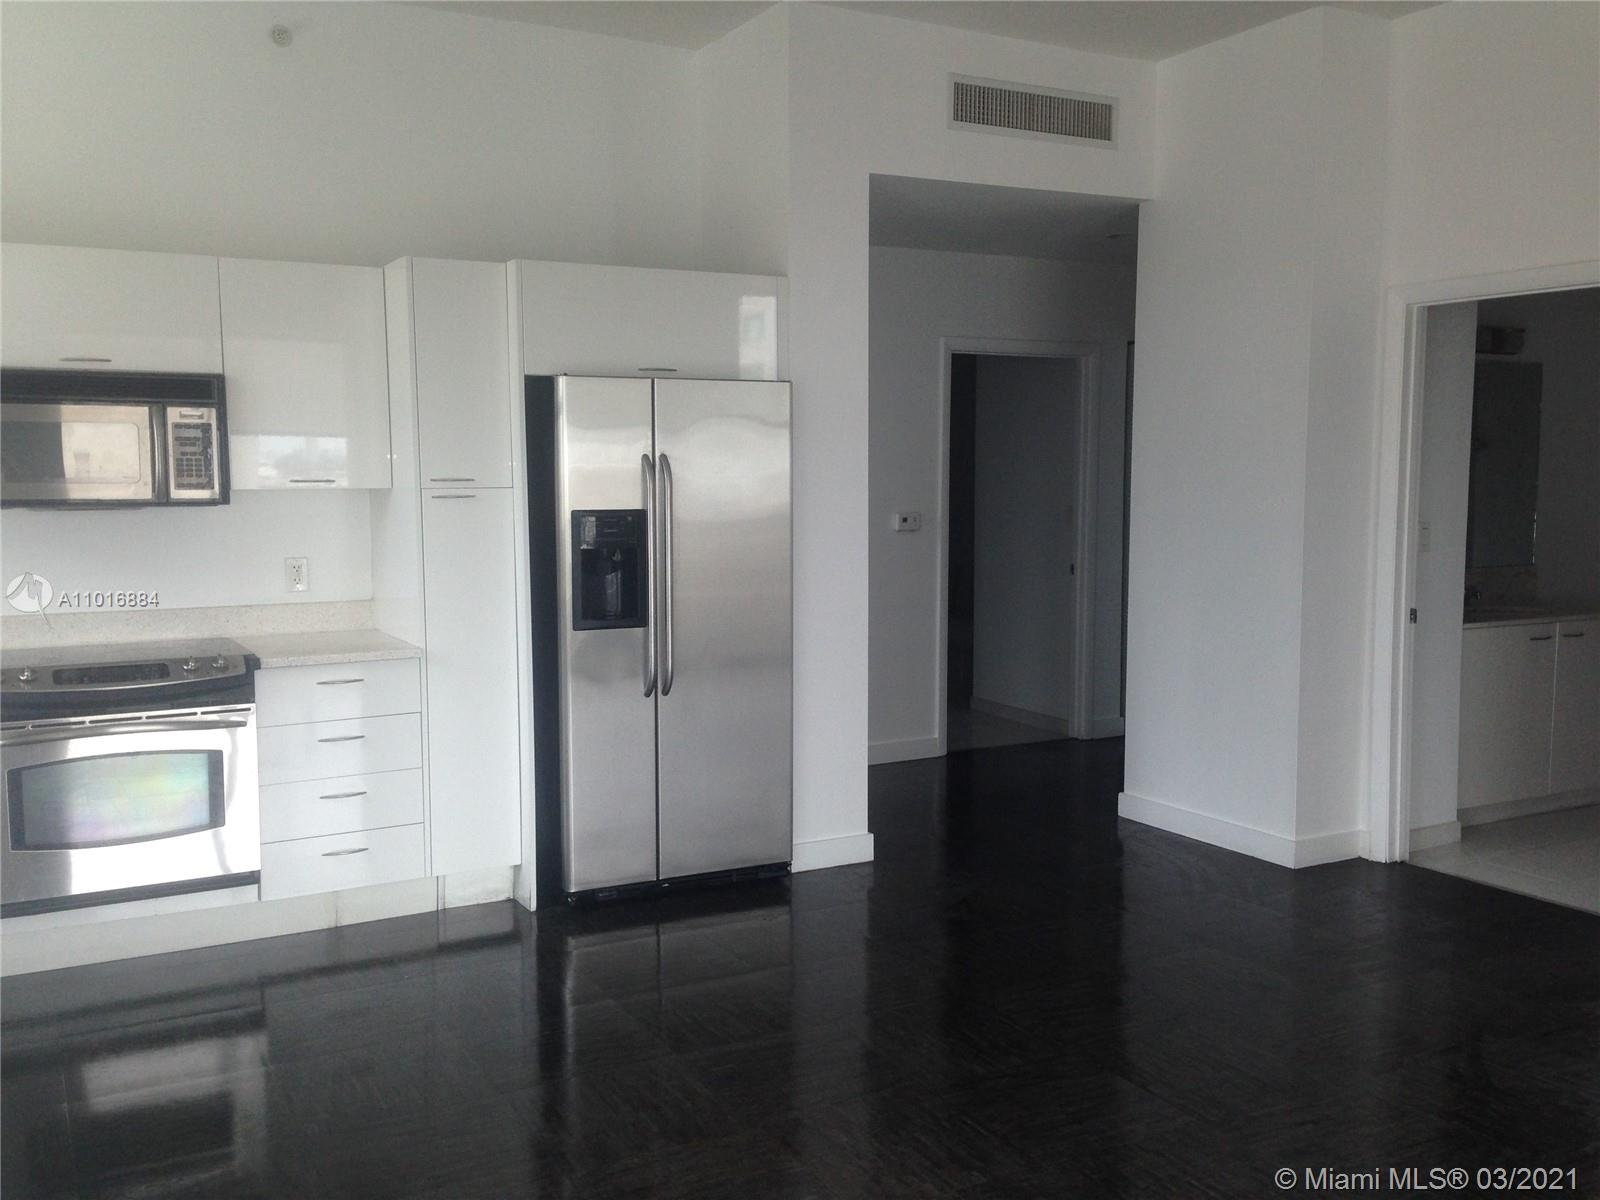 Extended Balcony!!Best line in the building. Tiled floors inside and out. Stucco and painted ceiling. Great investment property in thriving Downtown Miami.